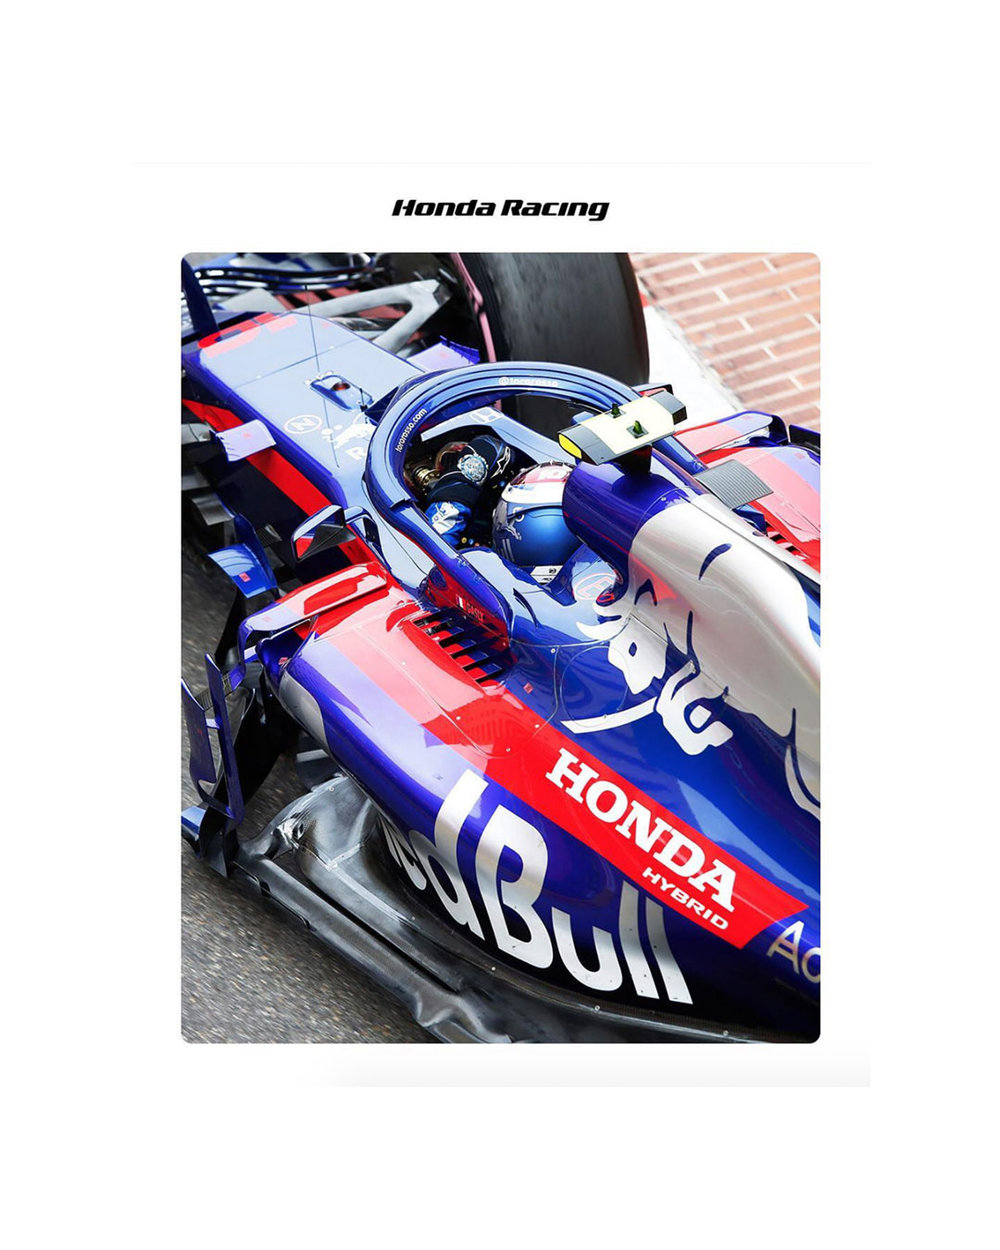 ary-and-joe-honda-formula-1-poster.jpg